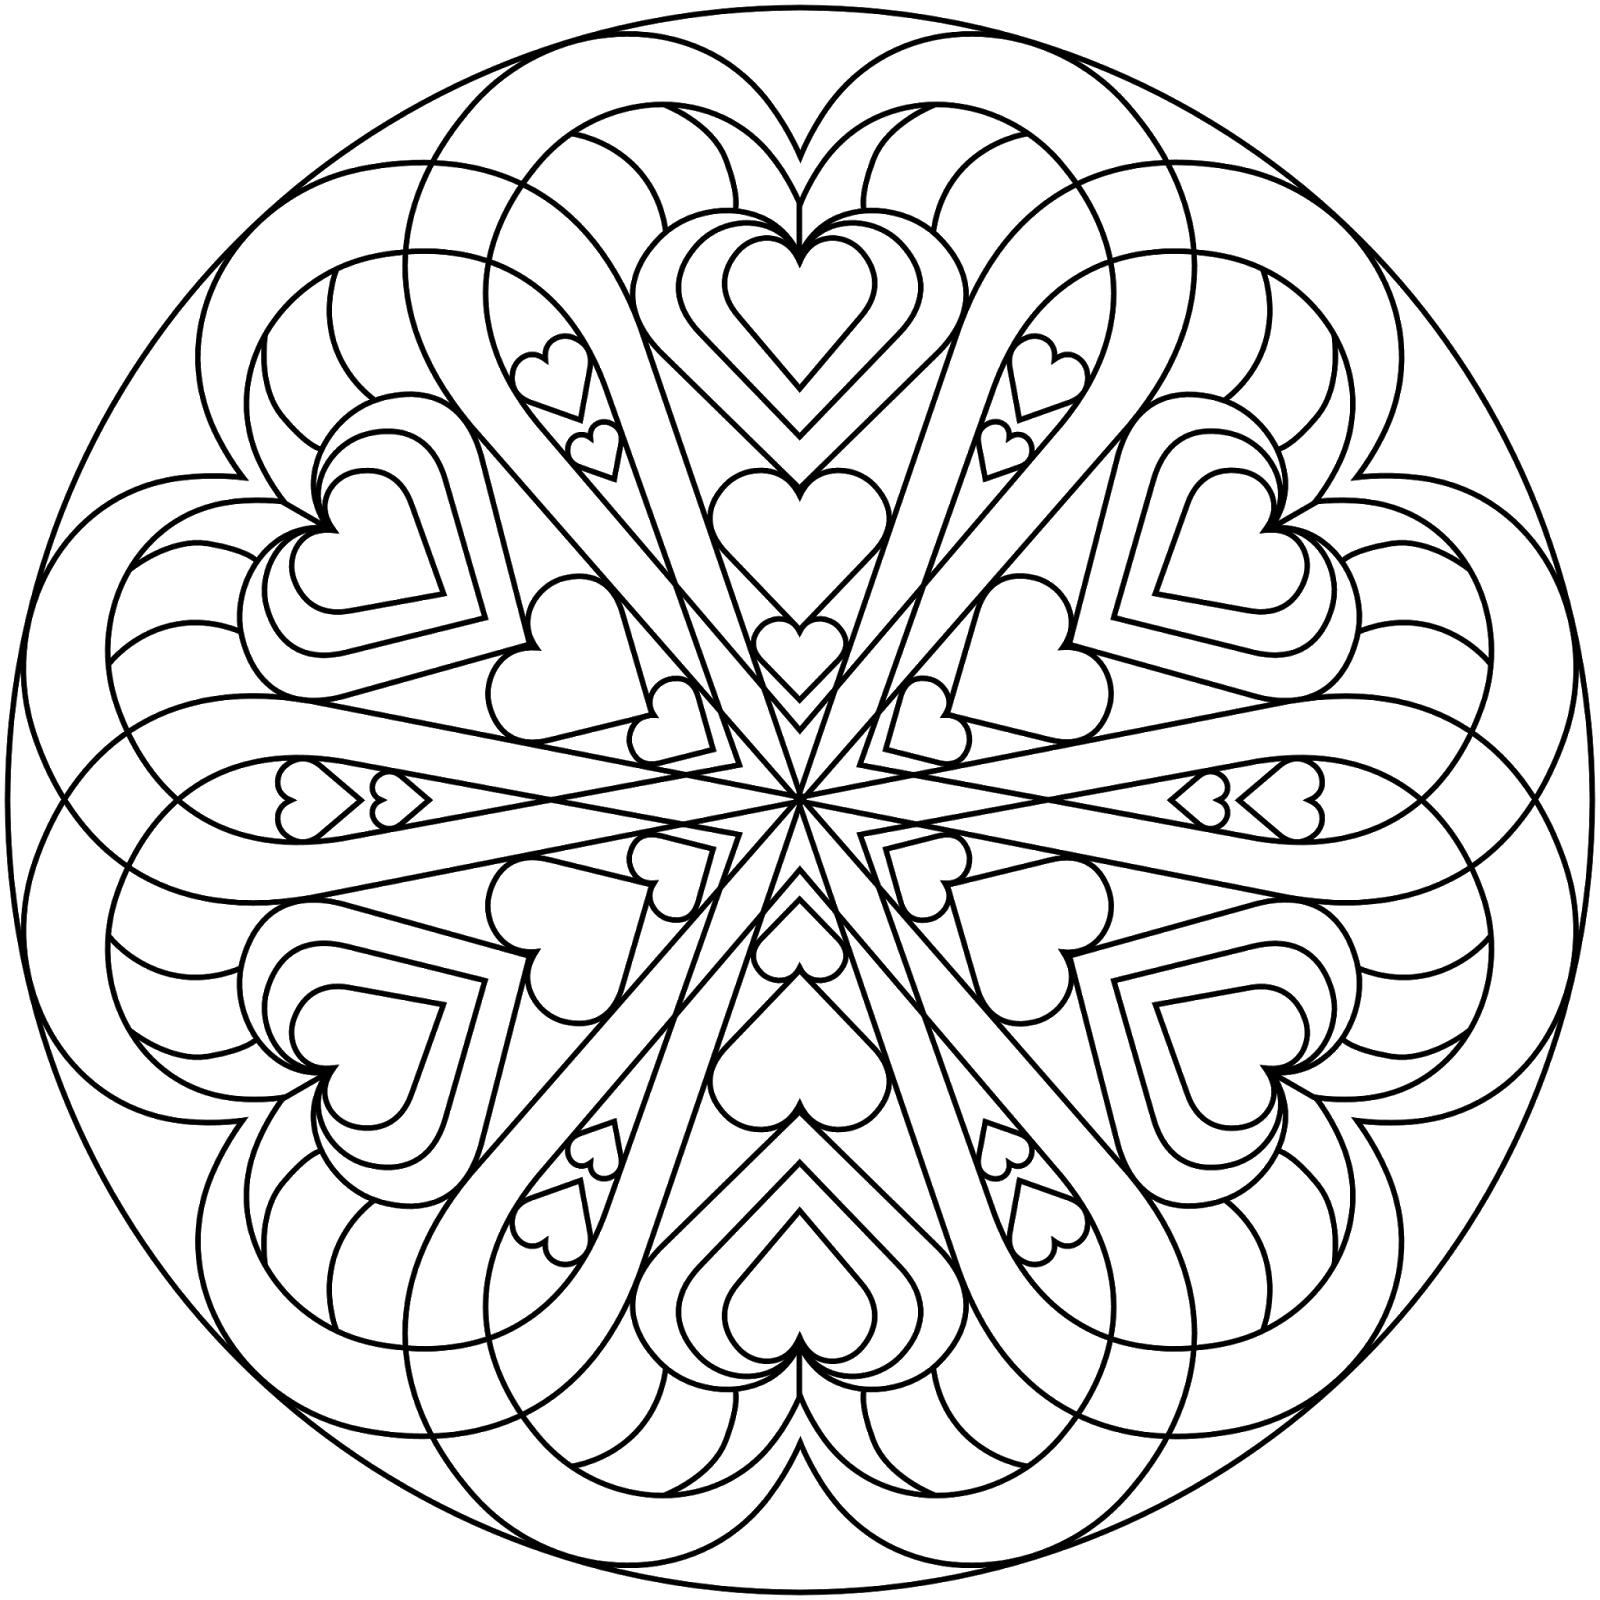 hearts printable coloring pages valentines day coloring pages for adults best coloring coloring hearts printable pages